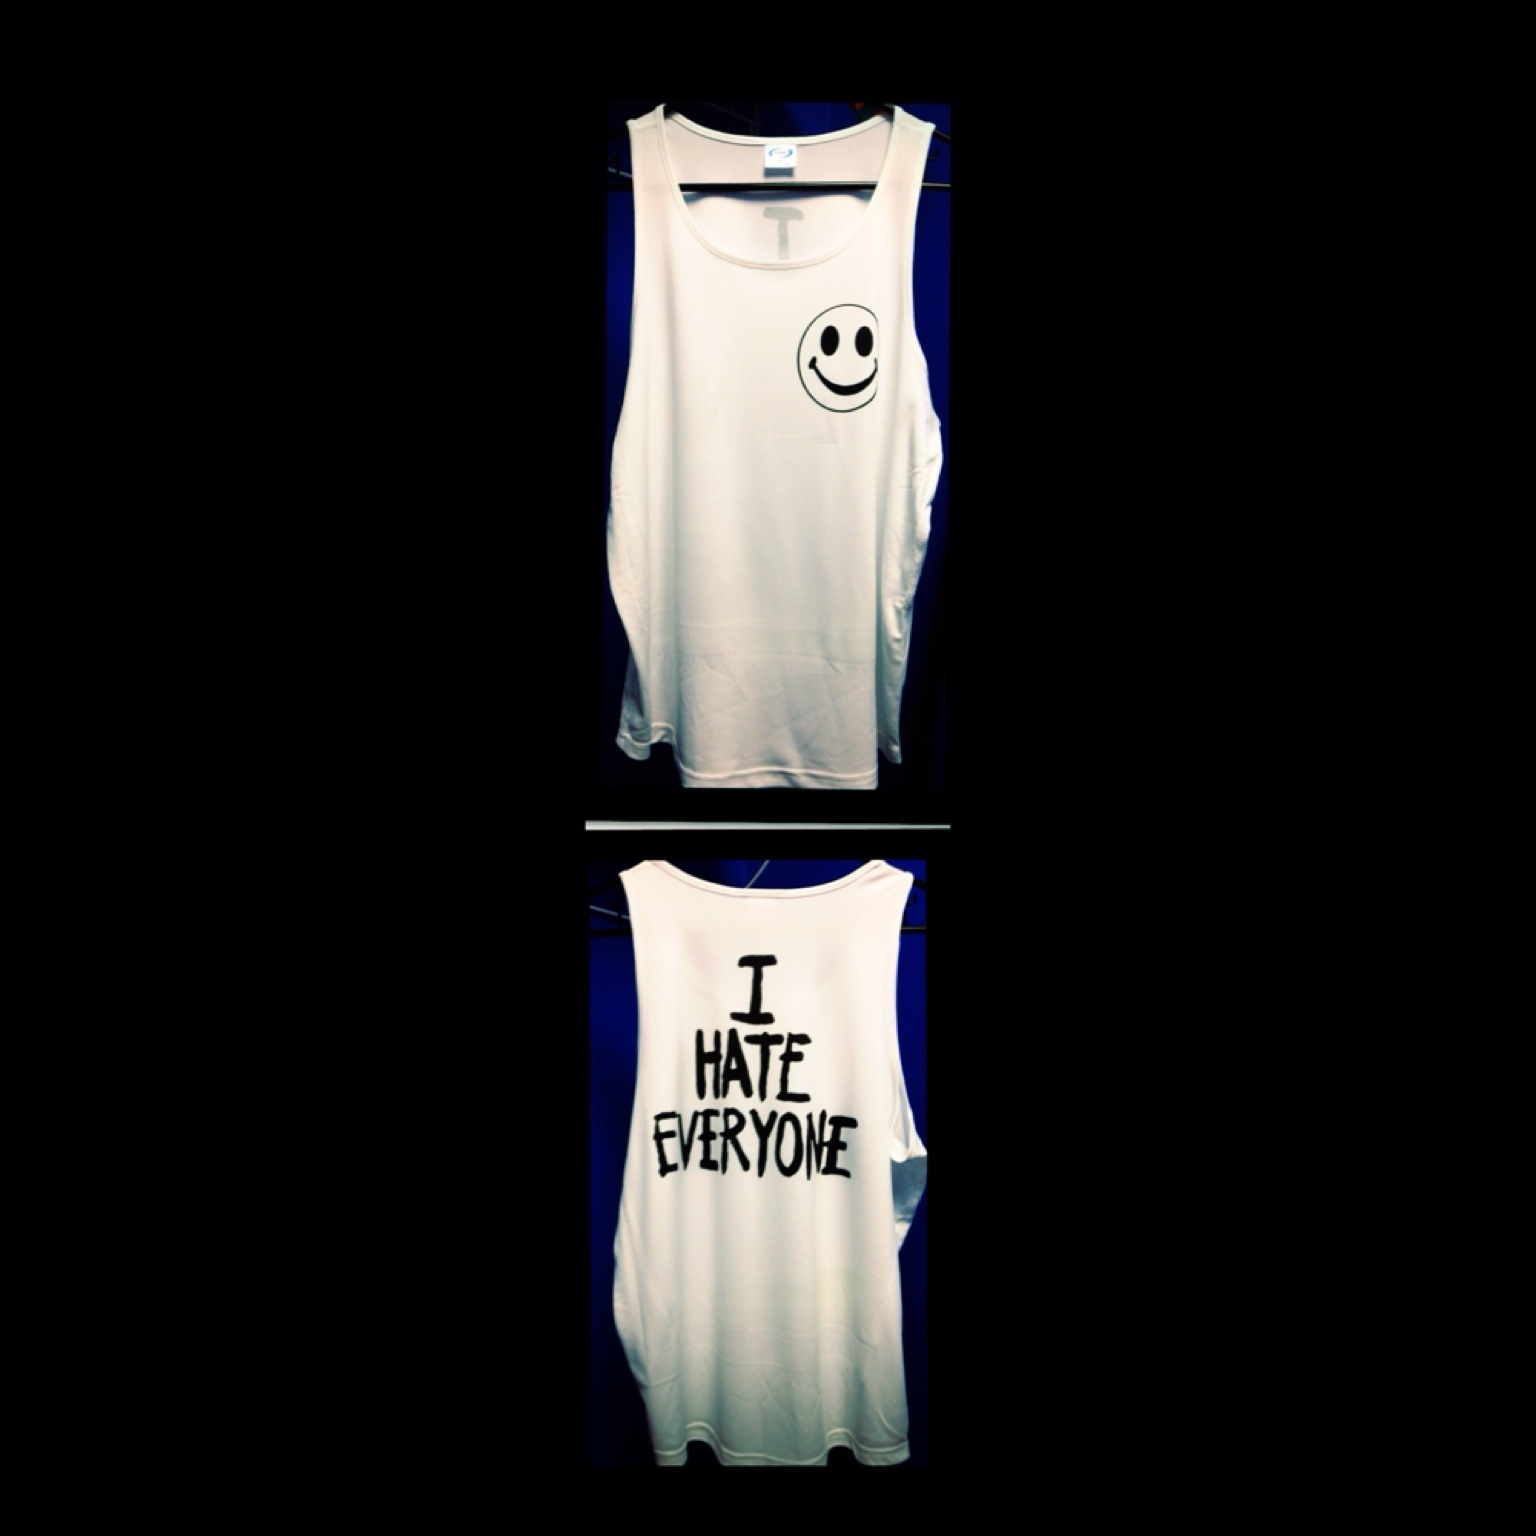 I HATE EVERYONE MOST POPULAR MOST WANTED TANK TOP